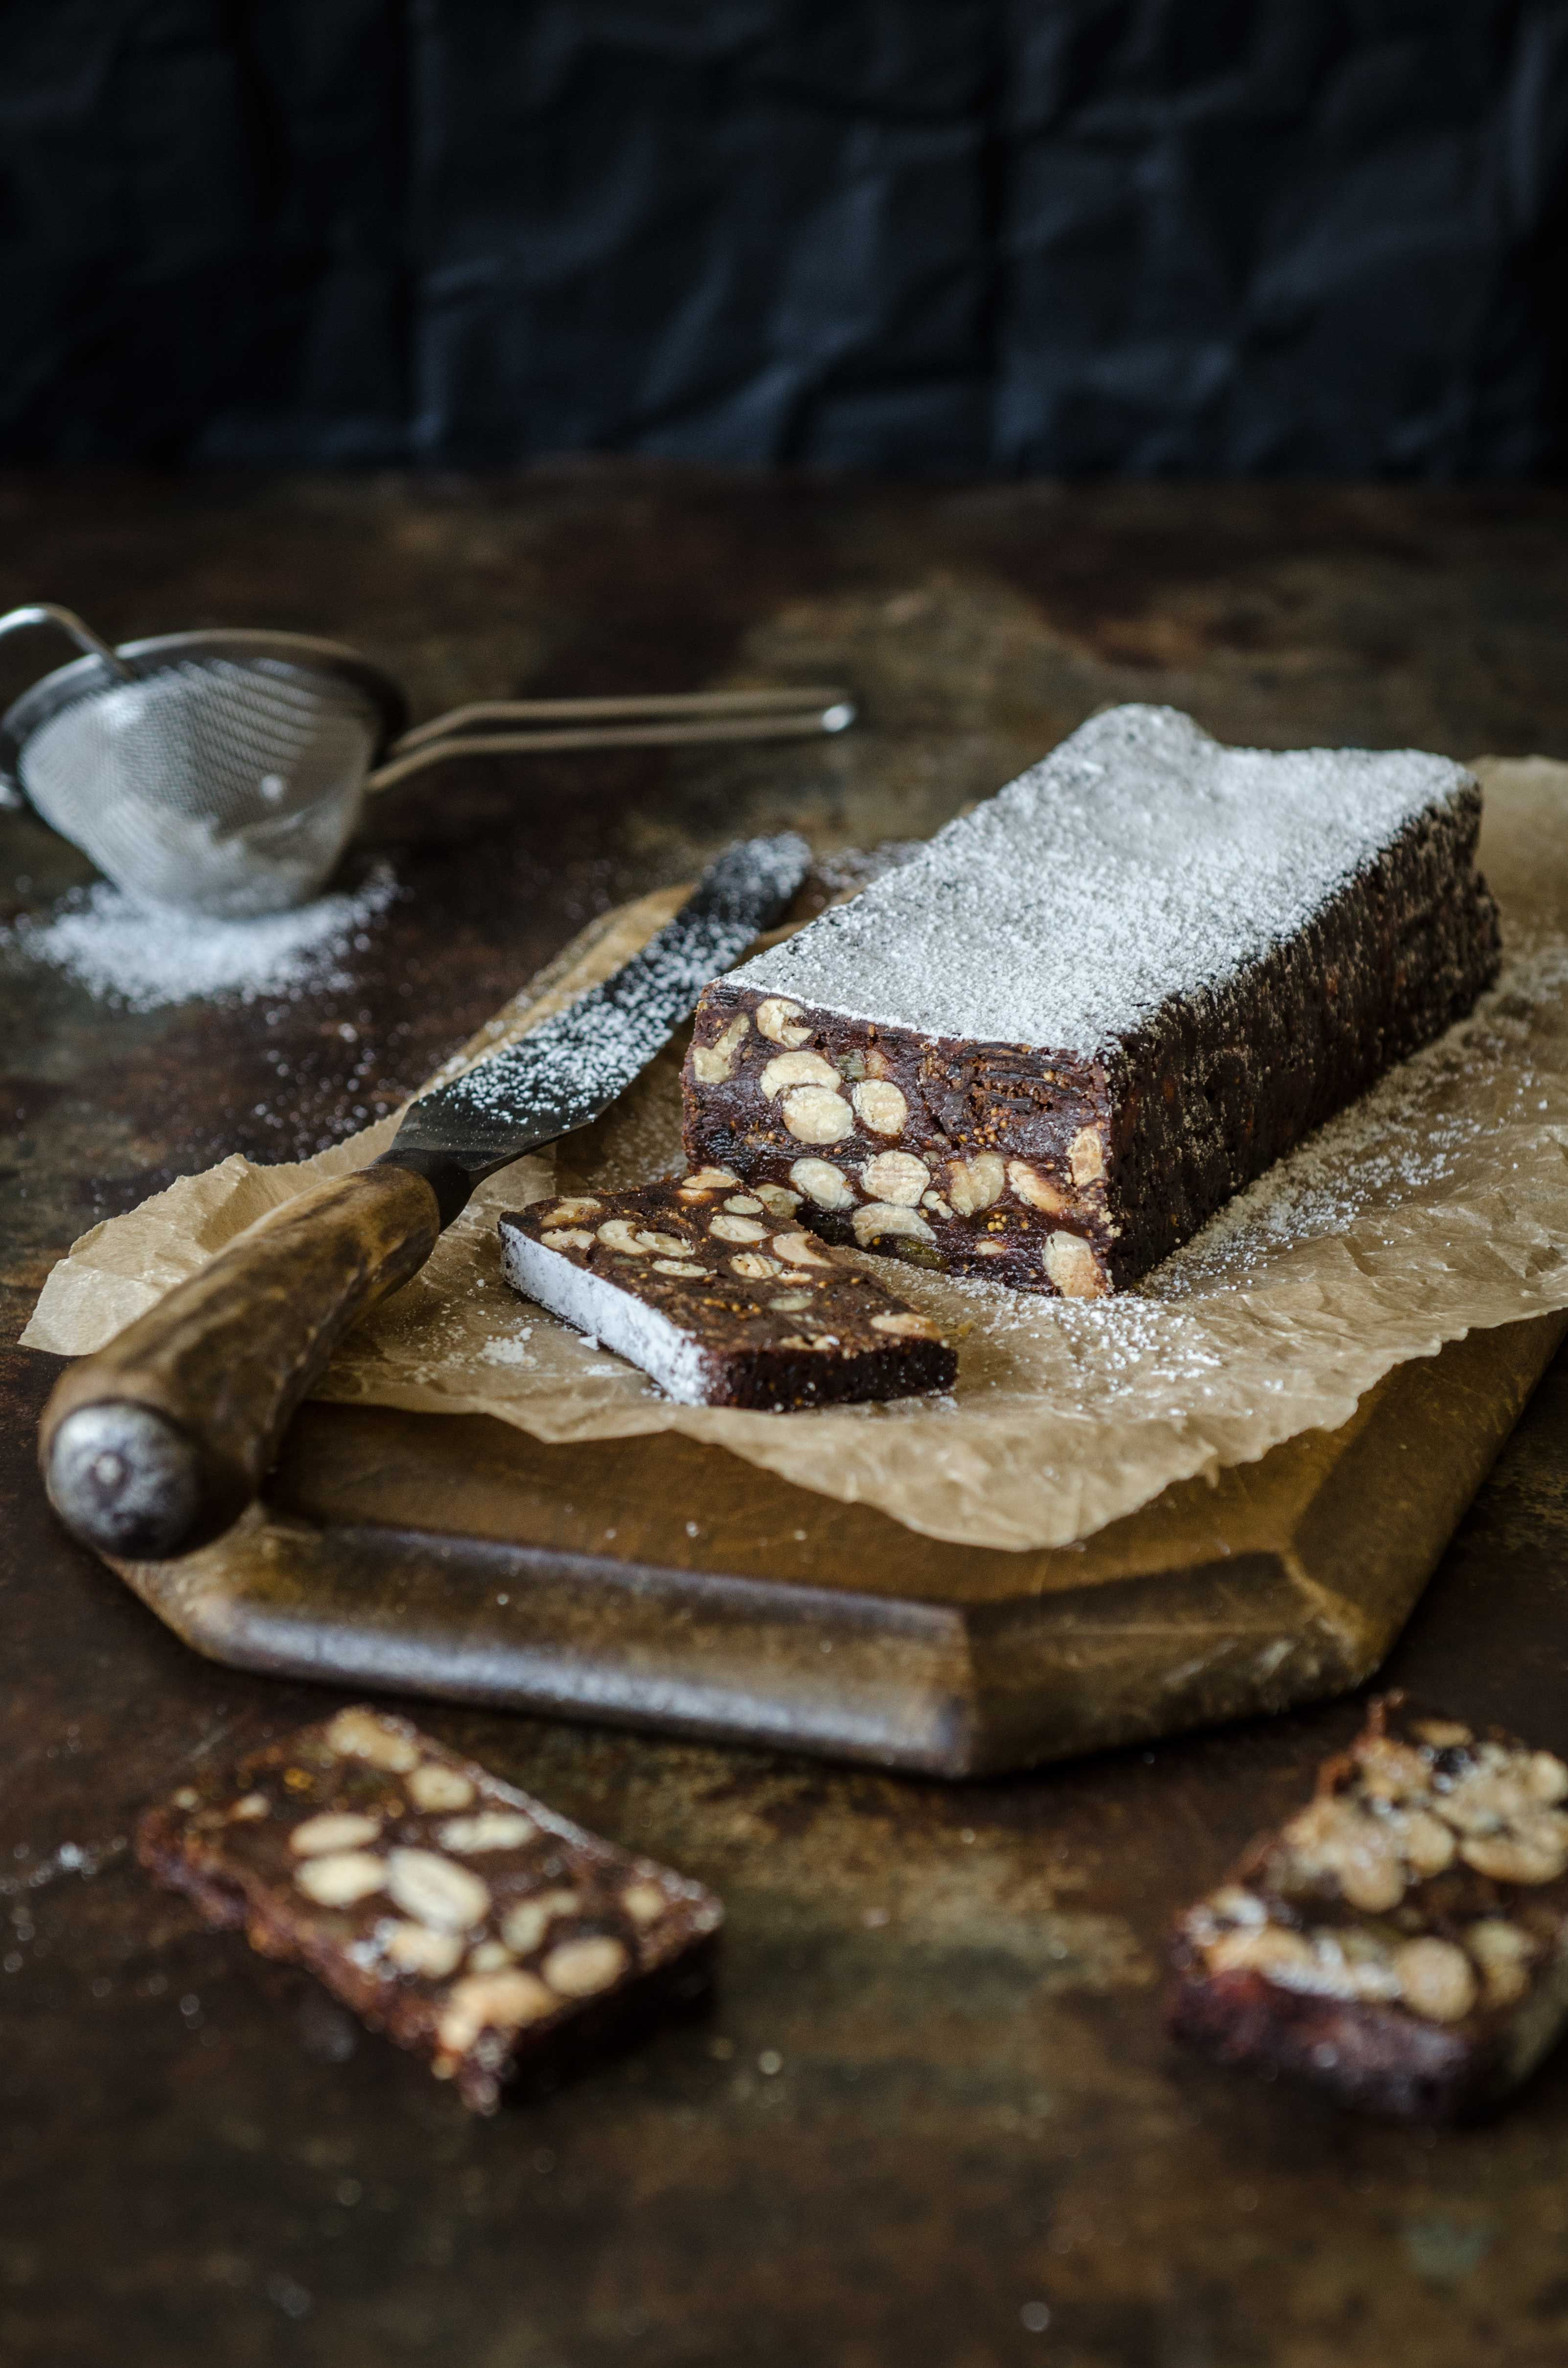 This recipe for Panforte al Cioccolate (Chocolate Panforte) is perfect served with coffee and is a great Christmas gift!